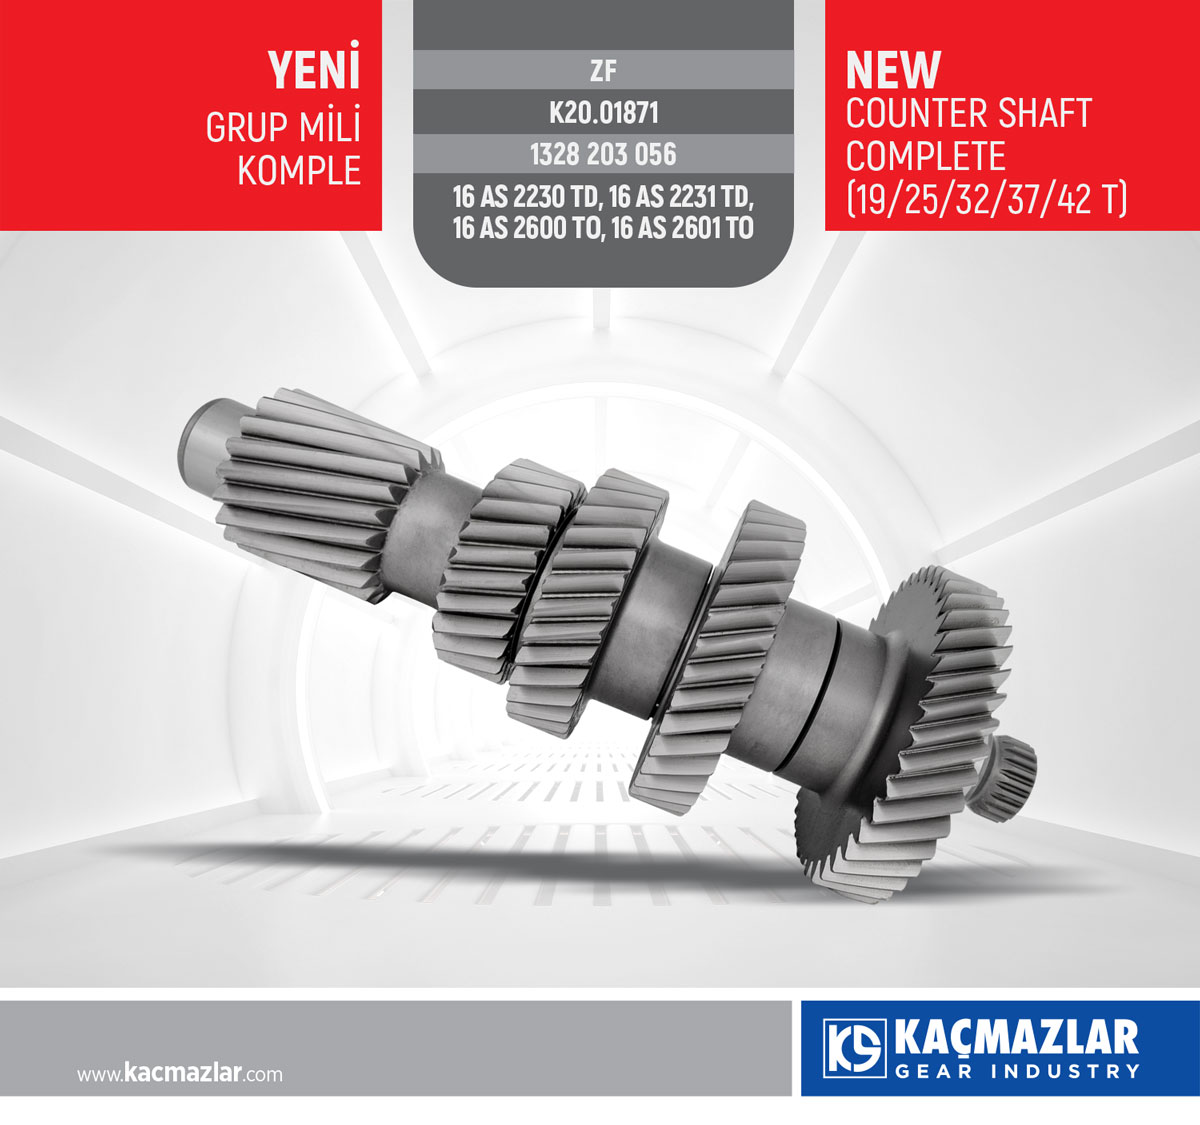 GRUP MİLİ KOMPLE - COUNTER SHAFT COMPLETE (19/25/32/37/42 T) / ZF